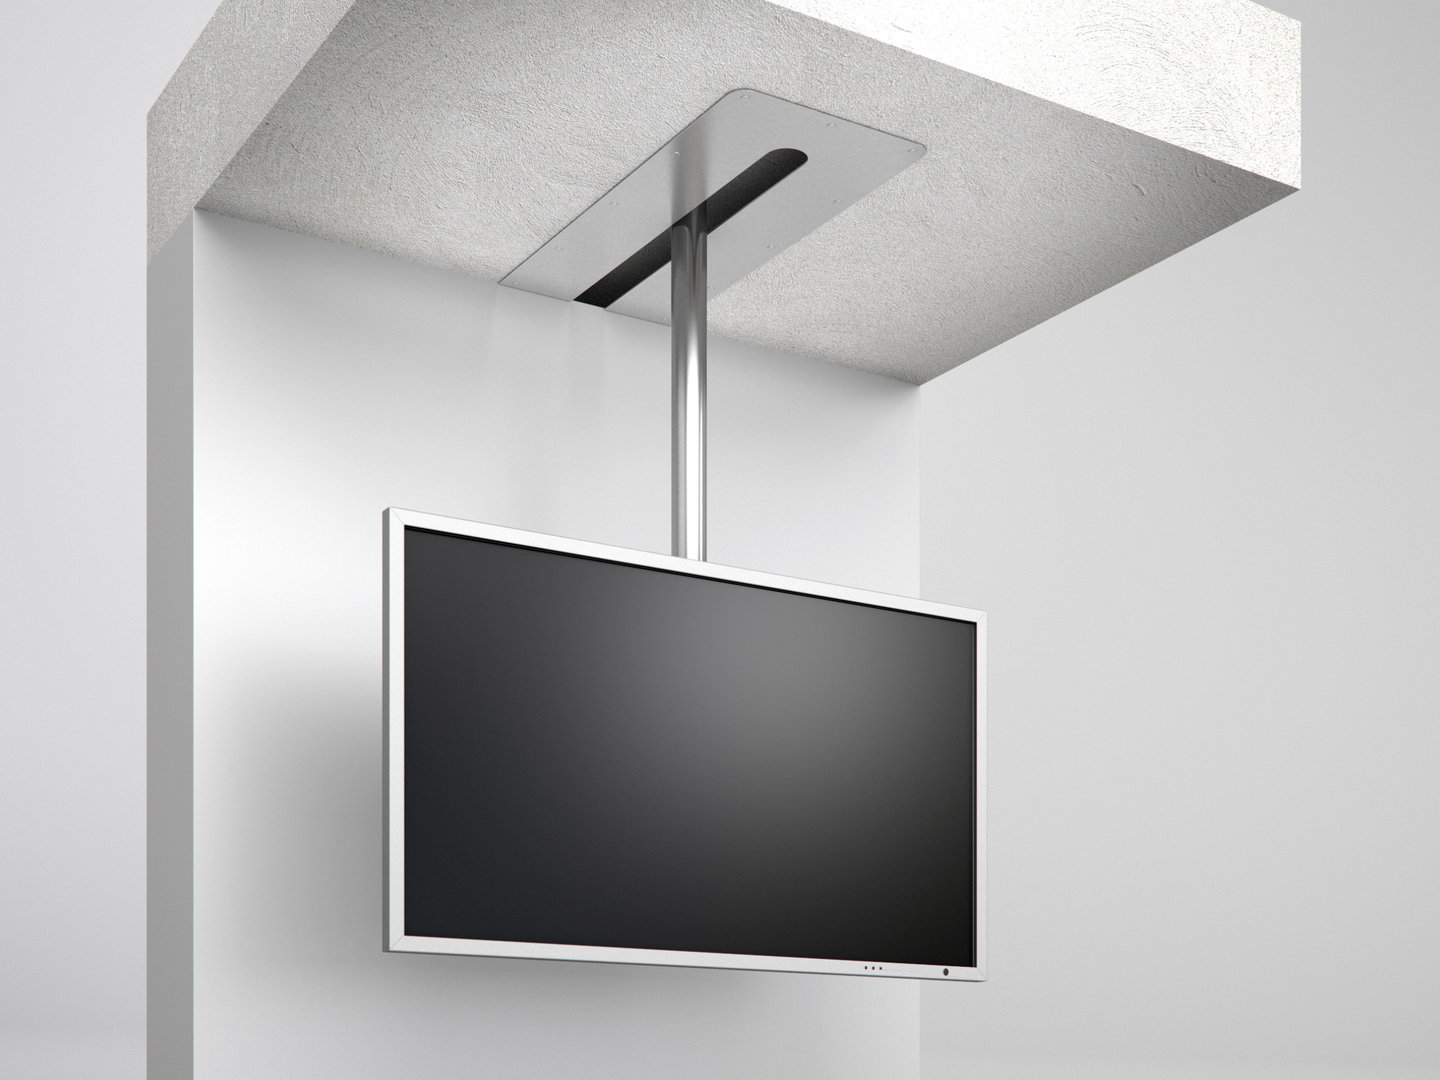 tv hater ceiling art116 f0 shop f r outdoor full hd tvs. Black Bedroom Furniture Sets. Home Design Ideas